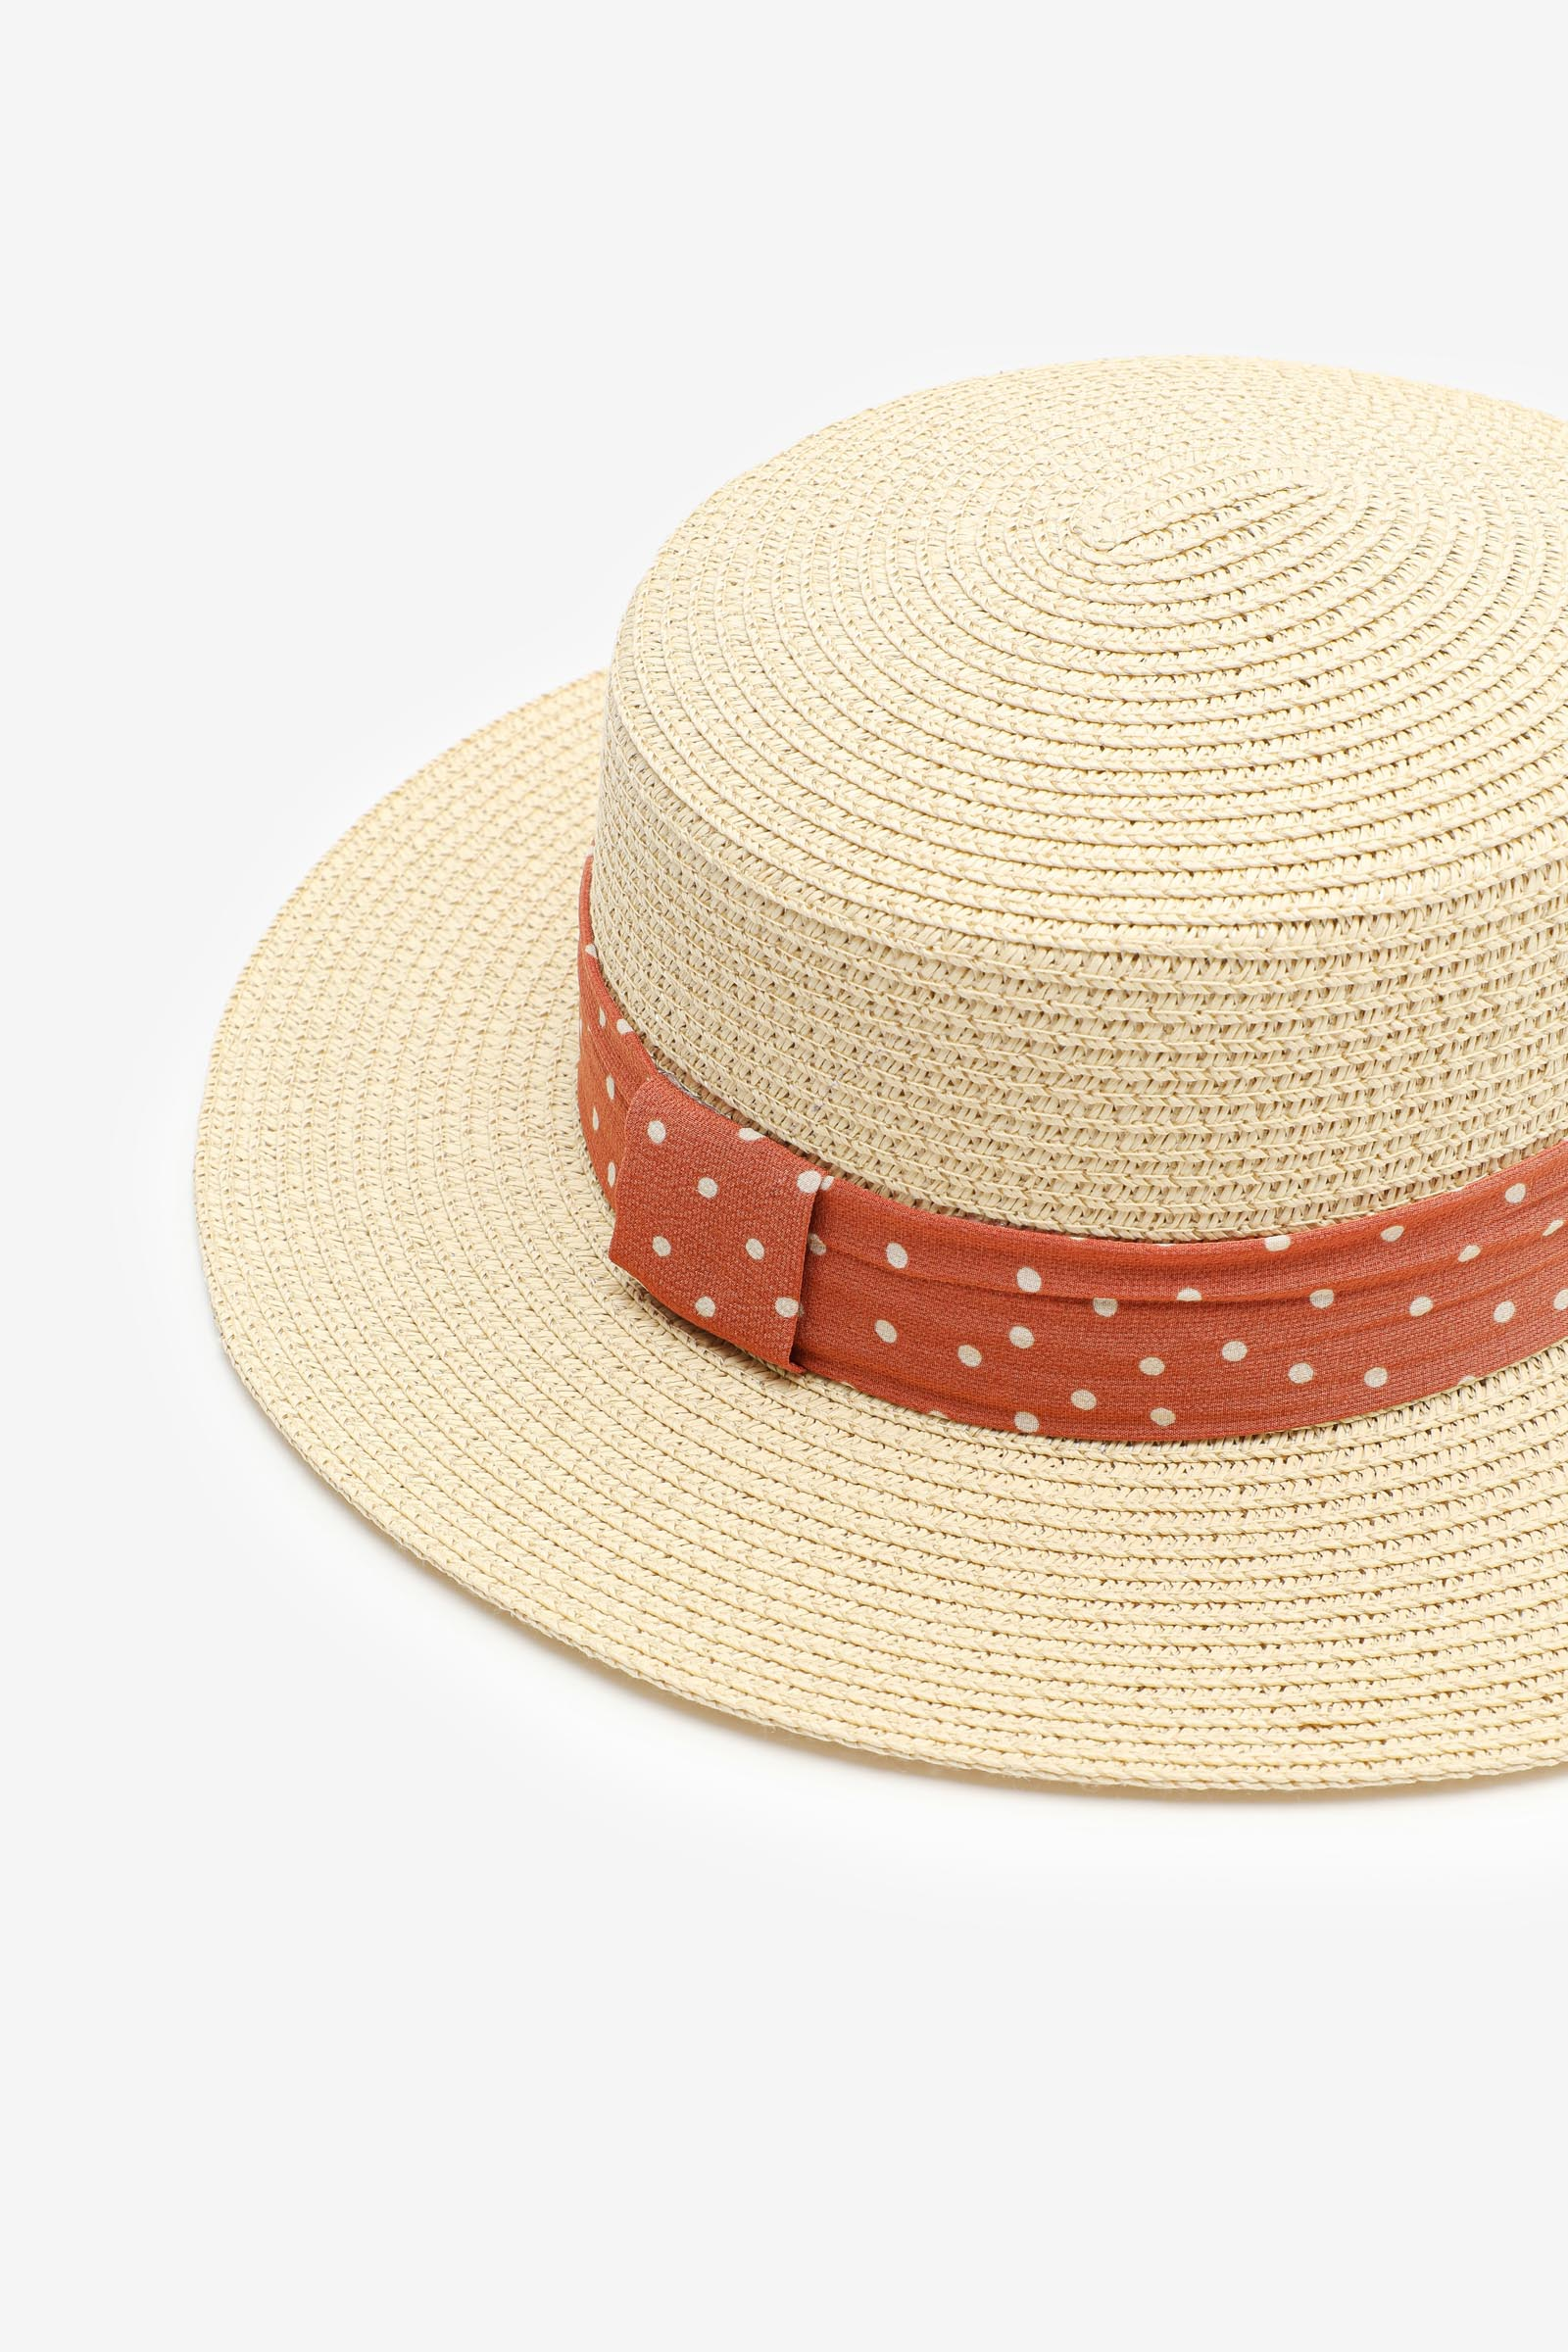 Straw Boater Hat with Polka Dot Band